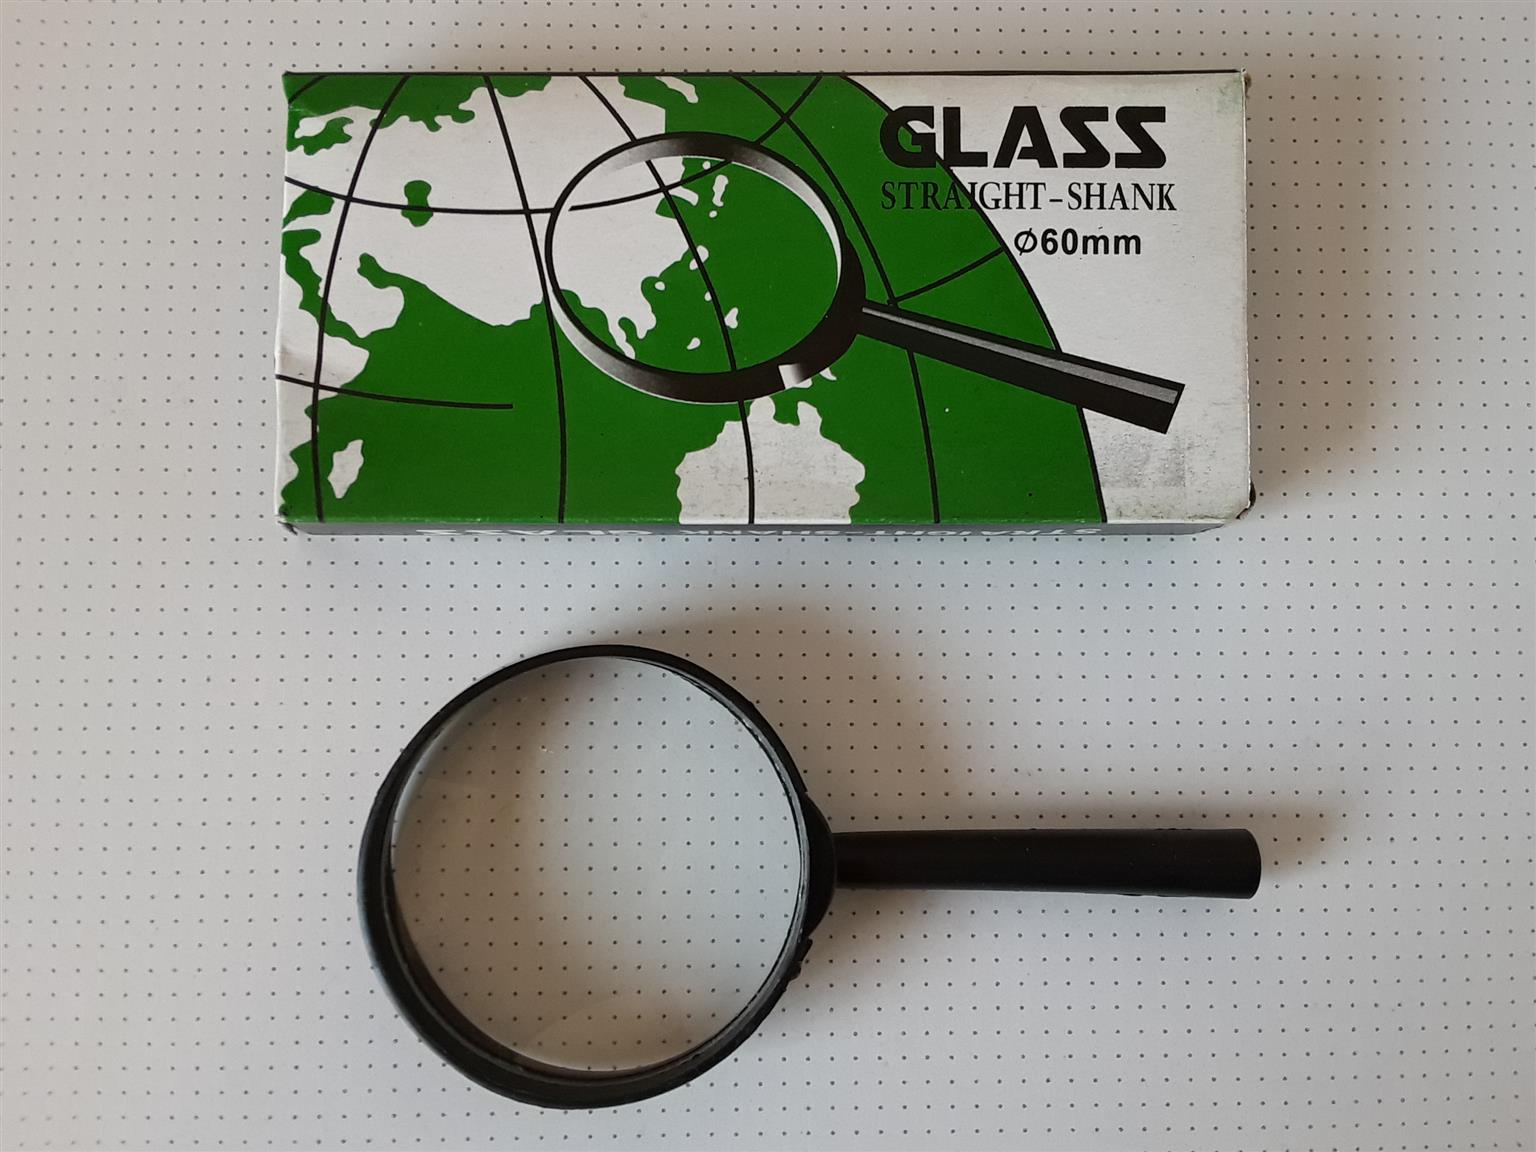 Magnifying Glass 60mm with handle.Brand new in a box.